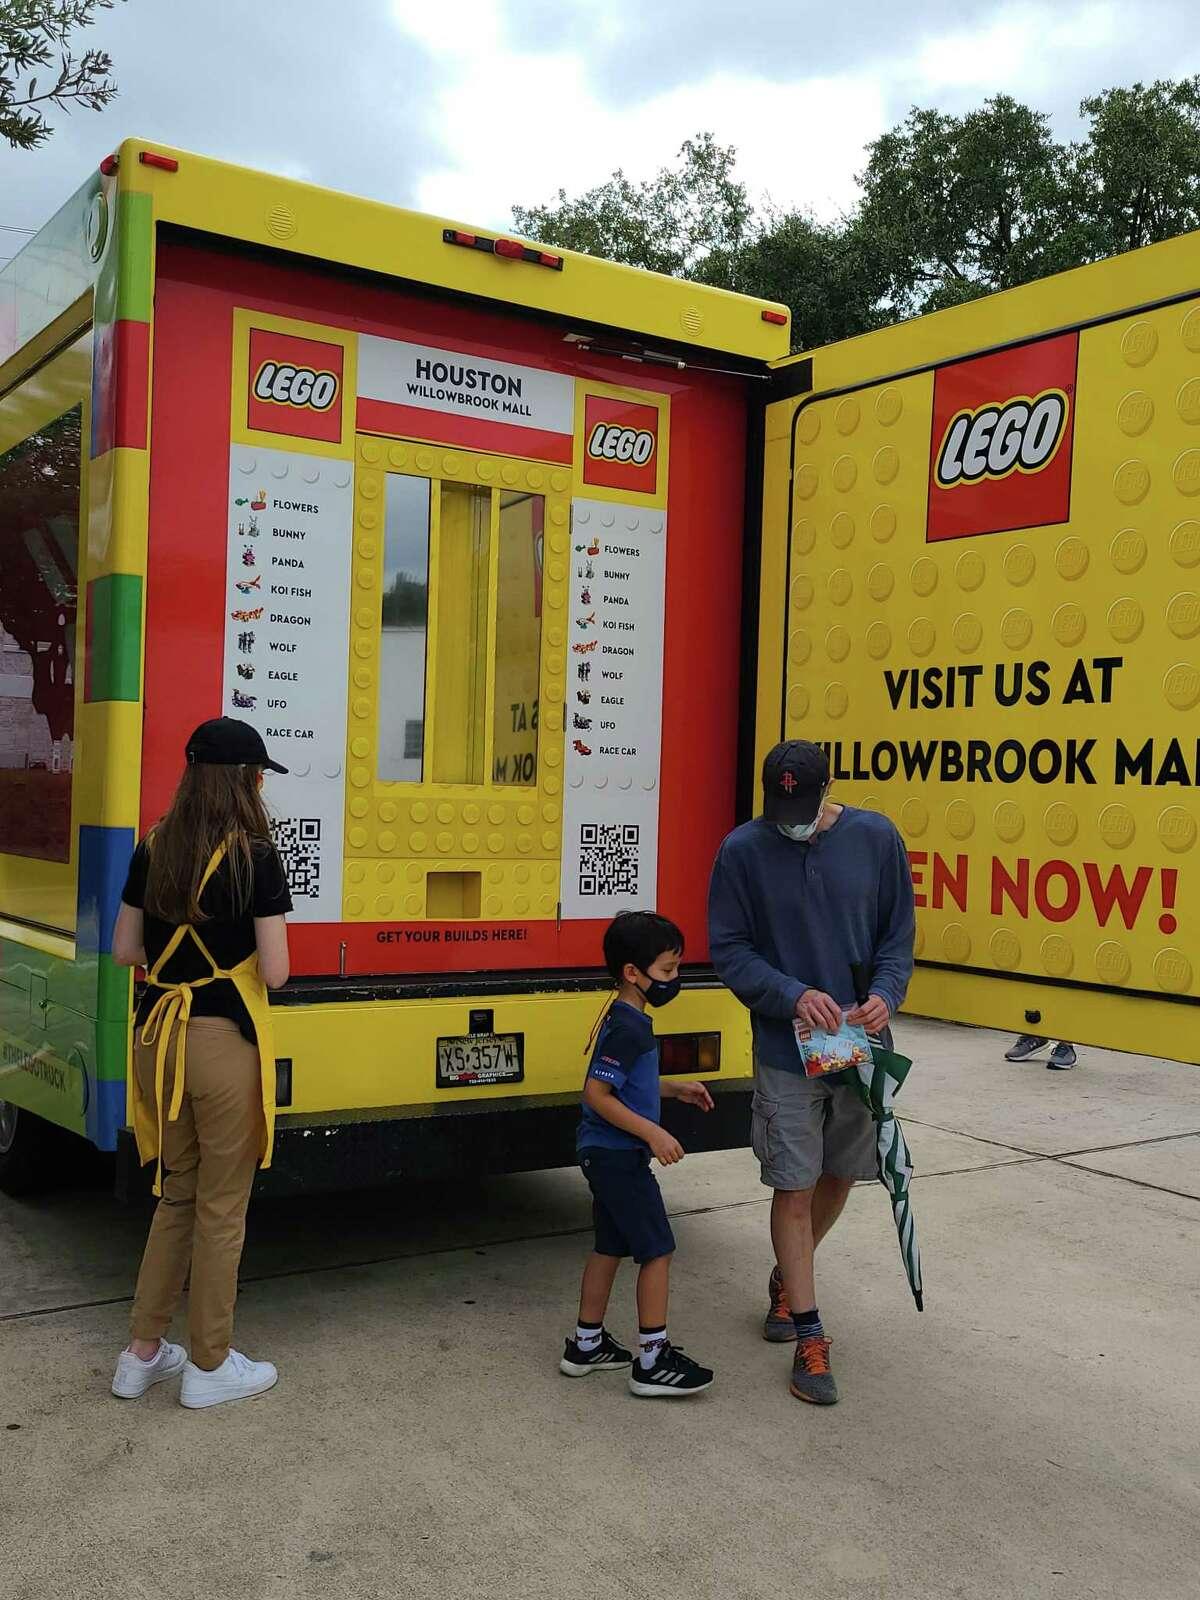 To celebrate the opening of its new LEGO store in Tomball at Willowbrook Mall, The LEGO Group brought its first-ever mobile LEGO truck to the Houston area to offer a sneak peak of what the store will bring.